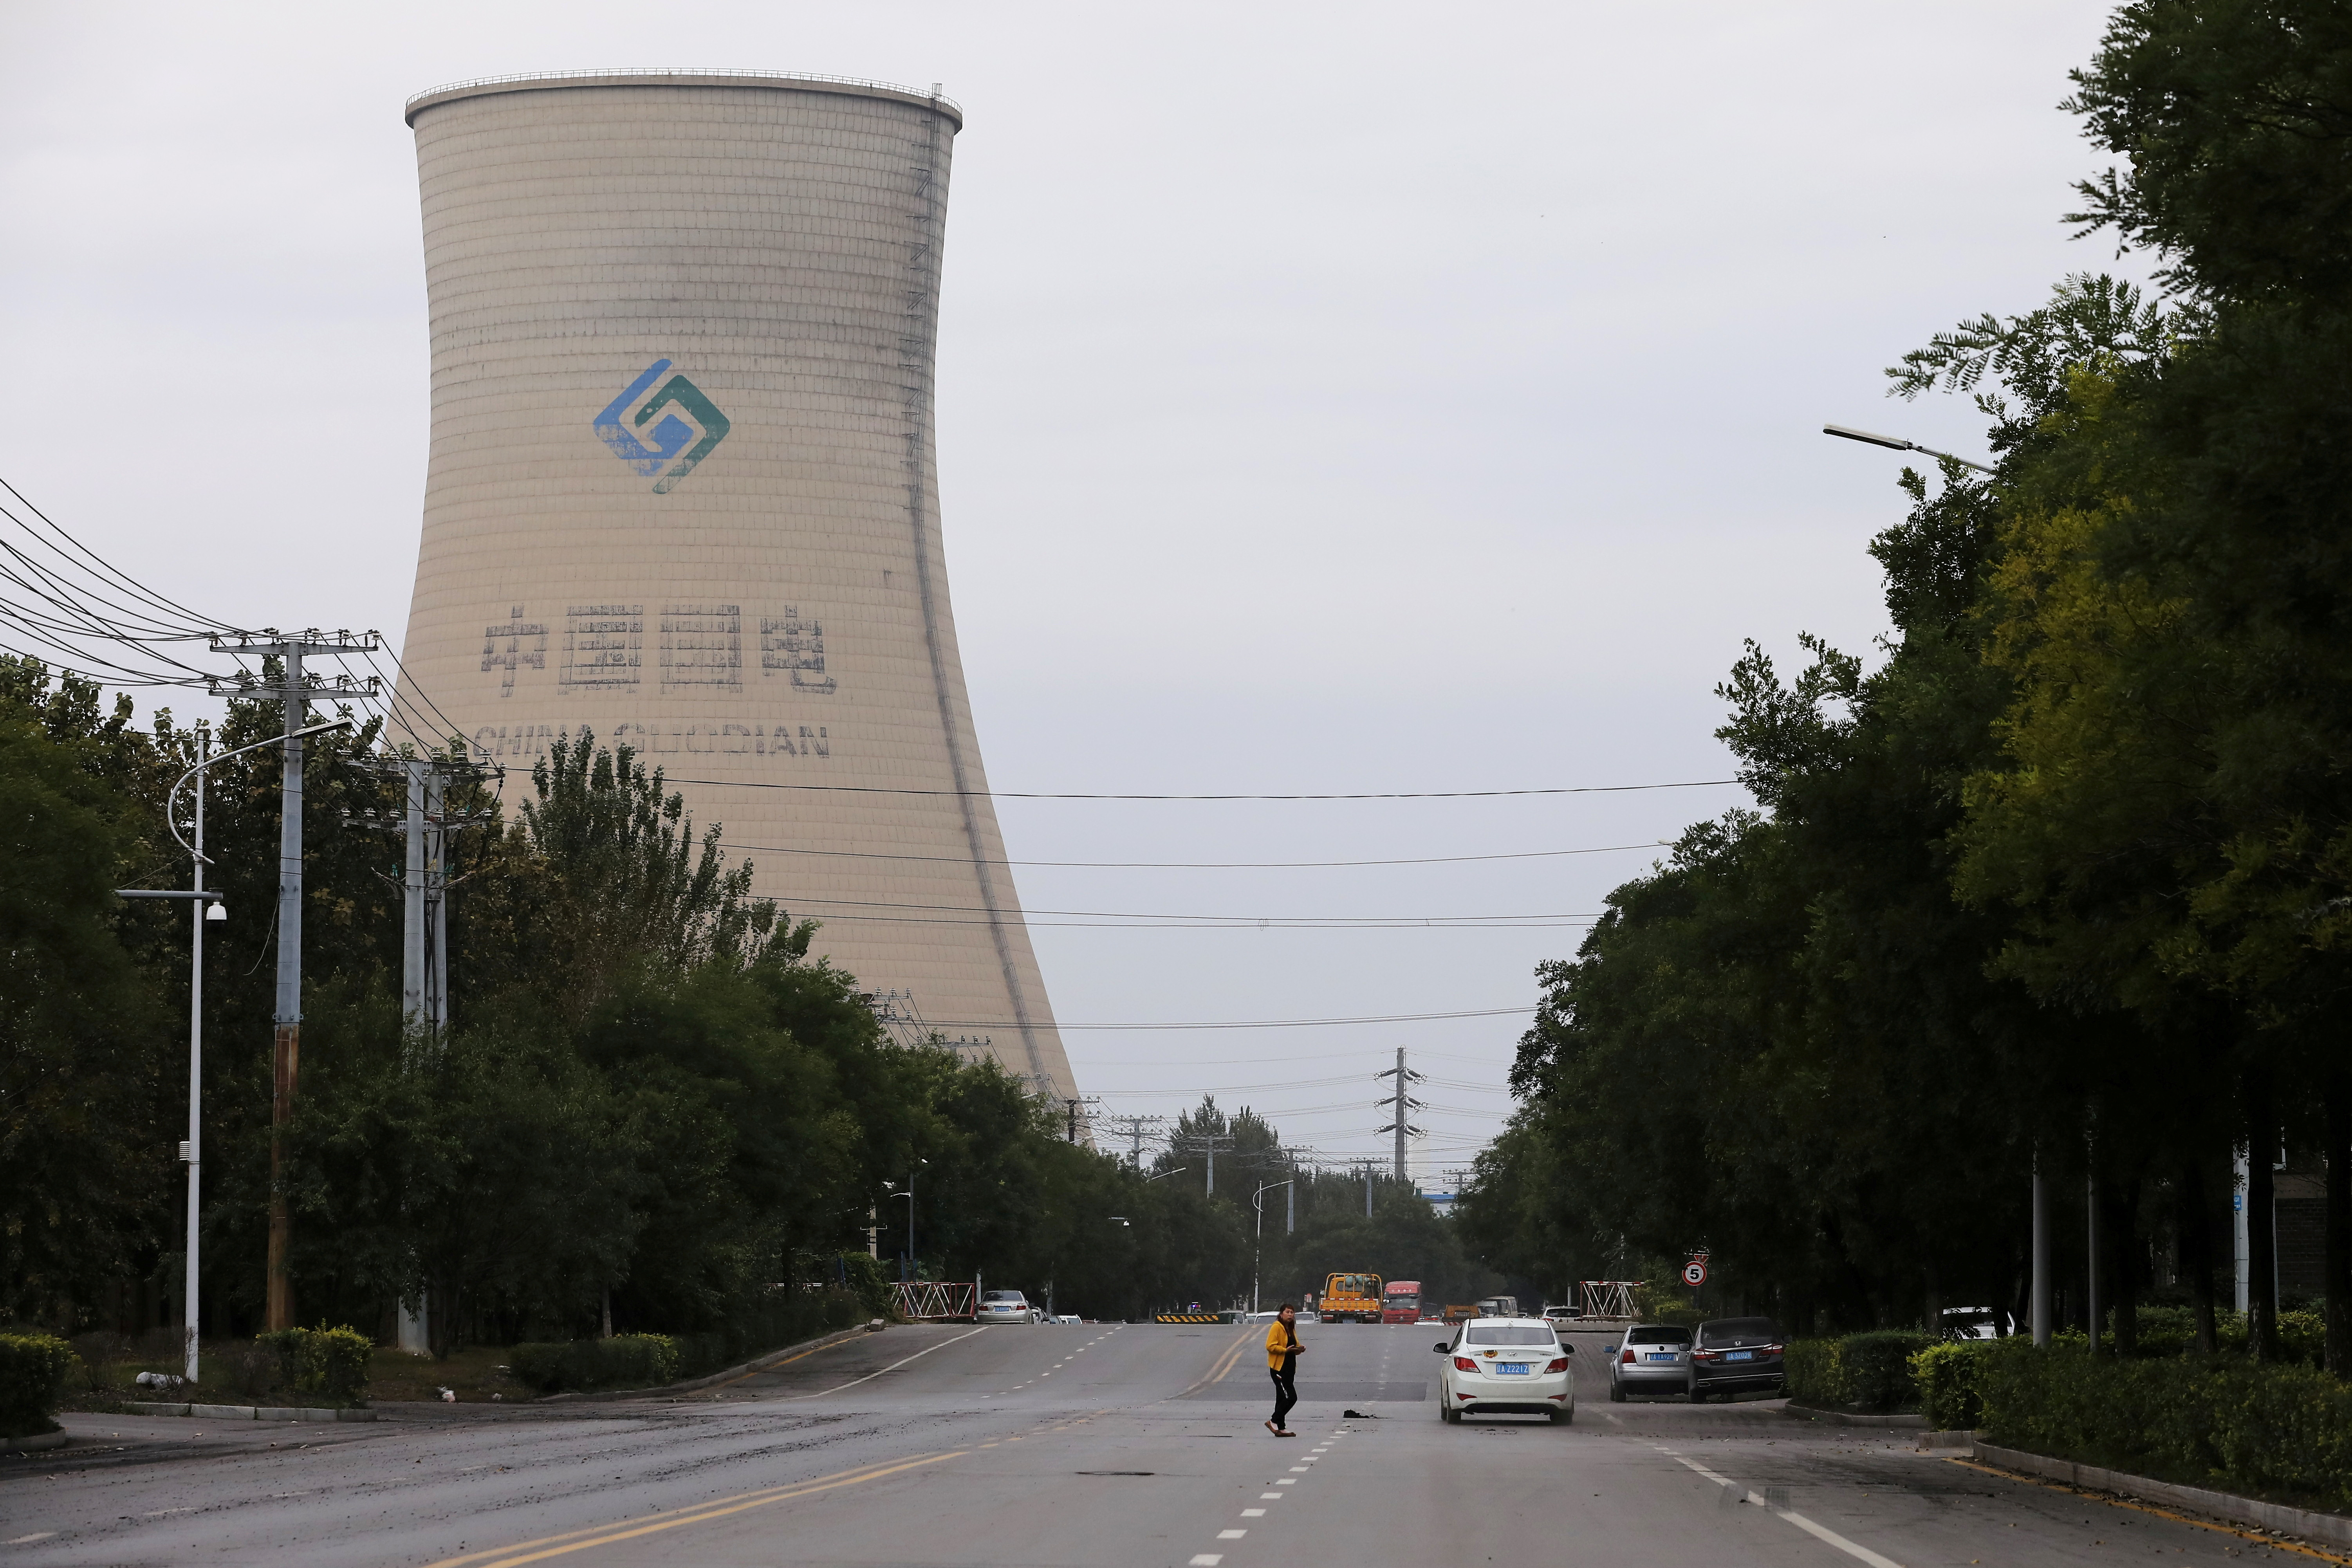 A person walks near a China Energy coal-fired power plant in Shenyang, Liaoning province, China September 29, 2021. REUTERS/Tingshu Wang